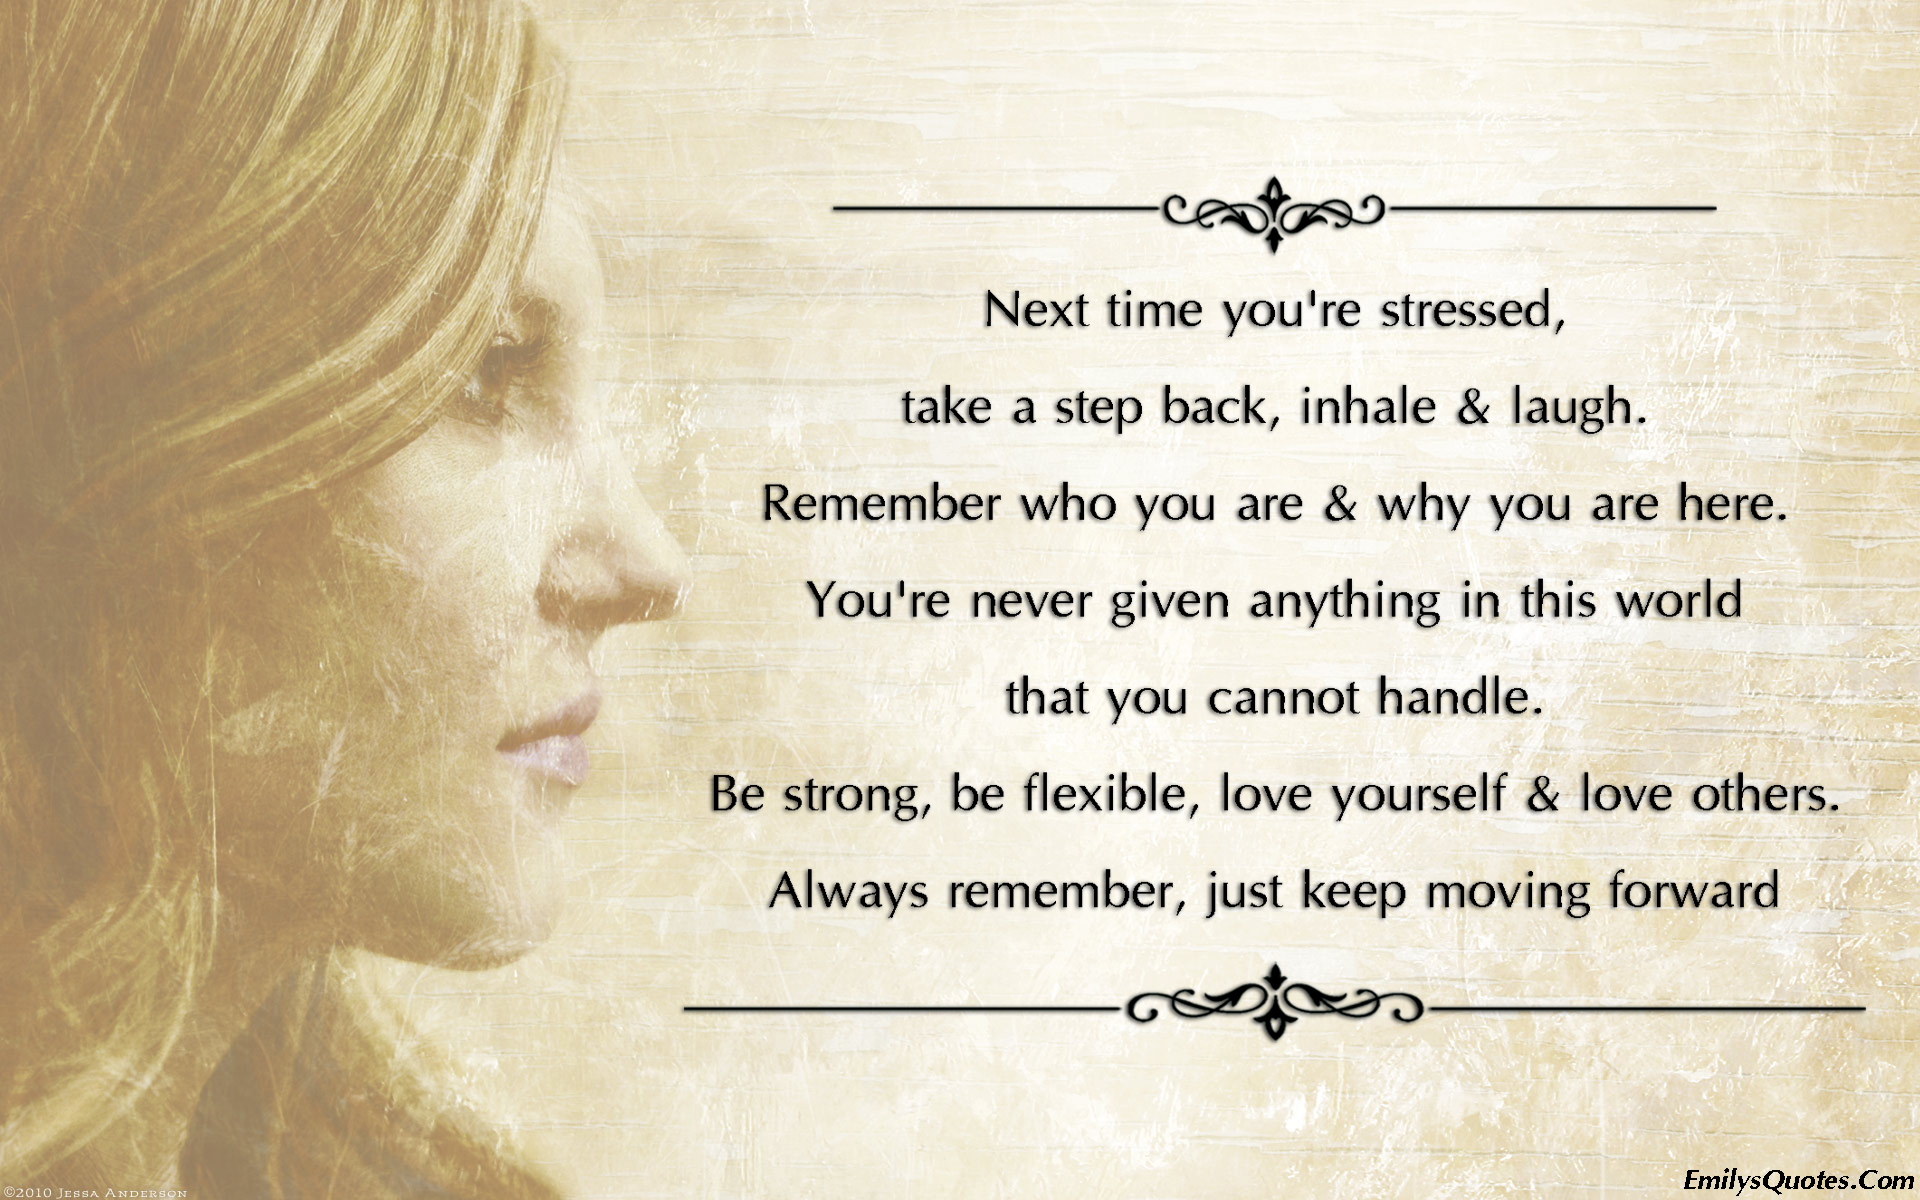 Taking Steps Back to Move Forward Take a Step Back